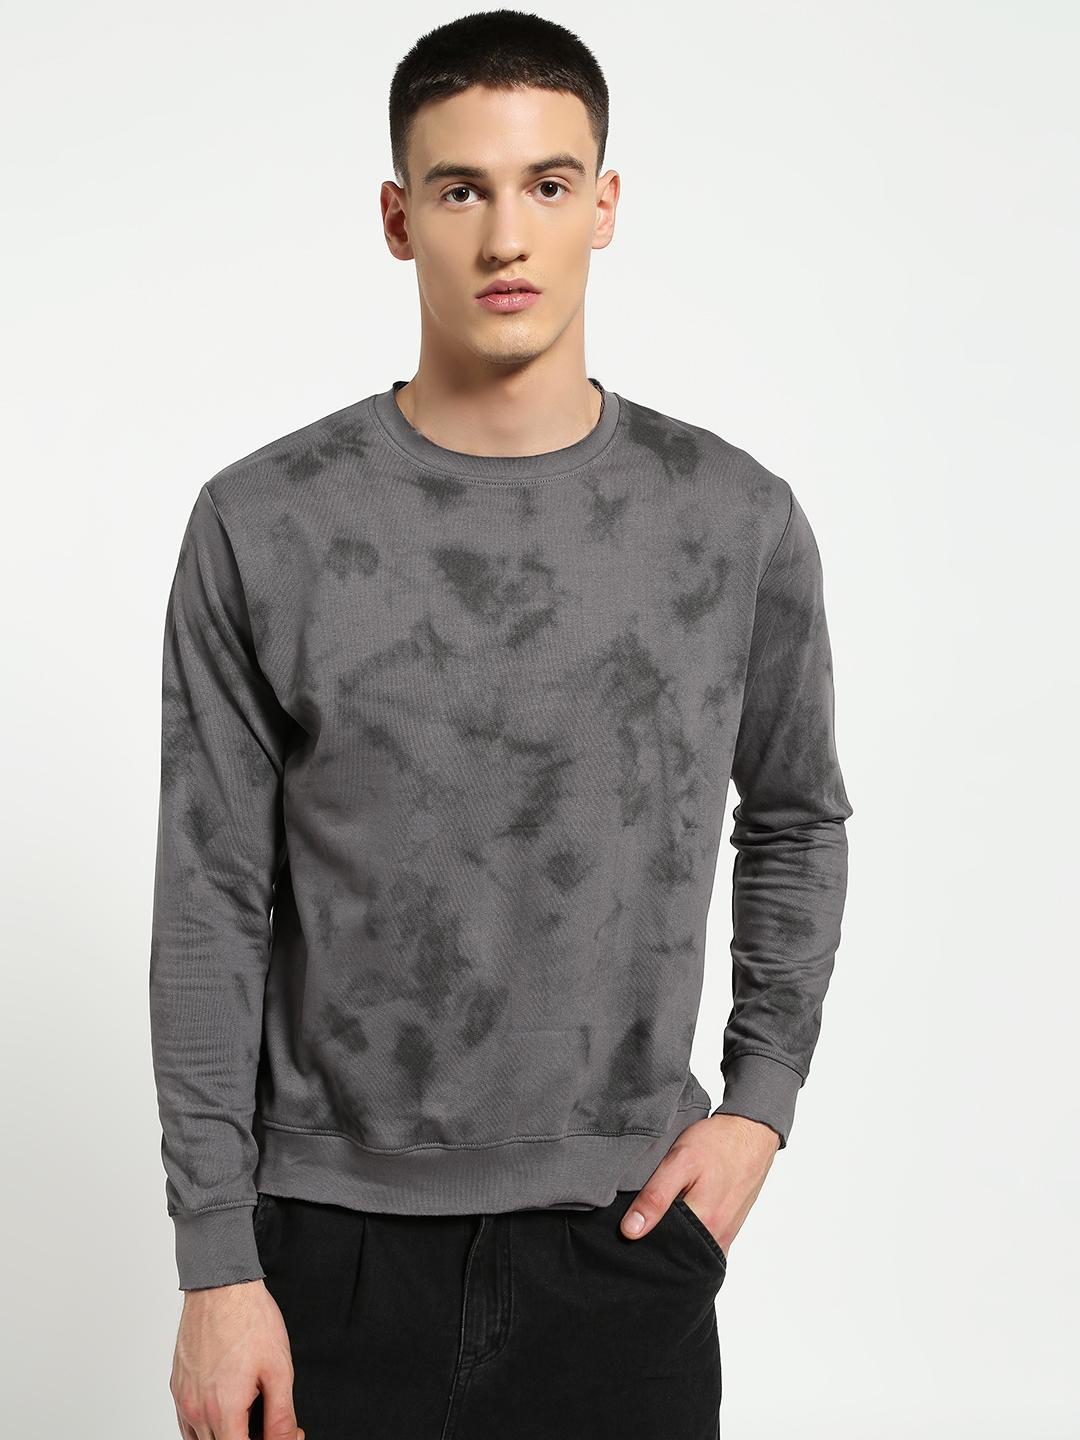 Blue Saint Grey Marble Print Raw Edge Sweatshirt 1